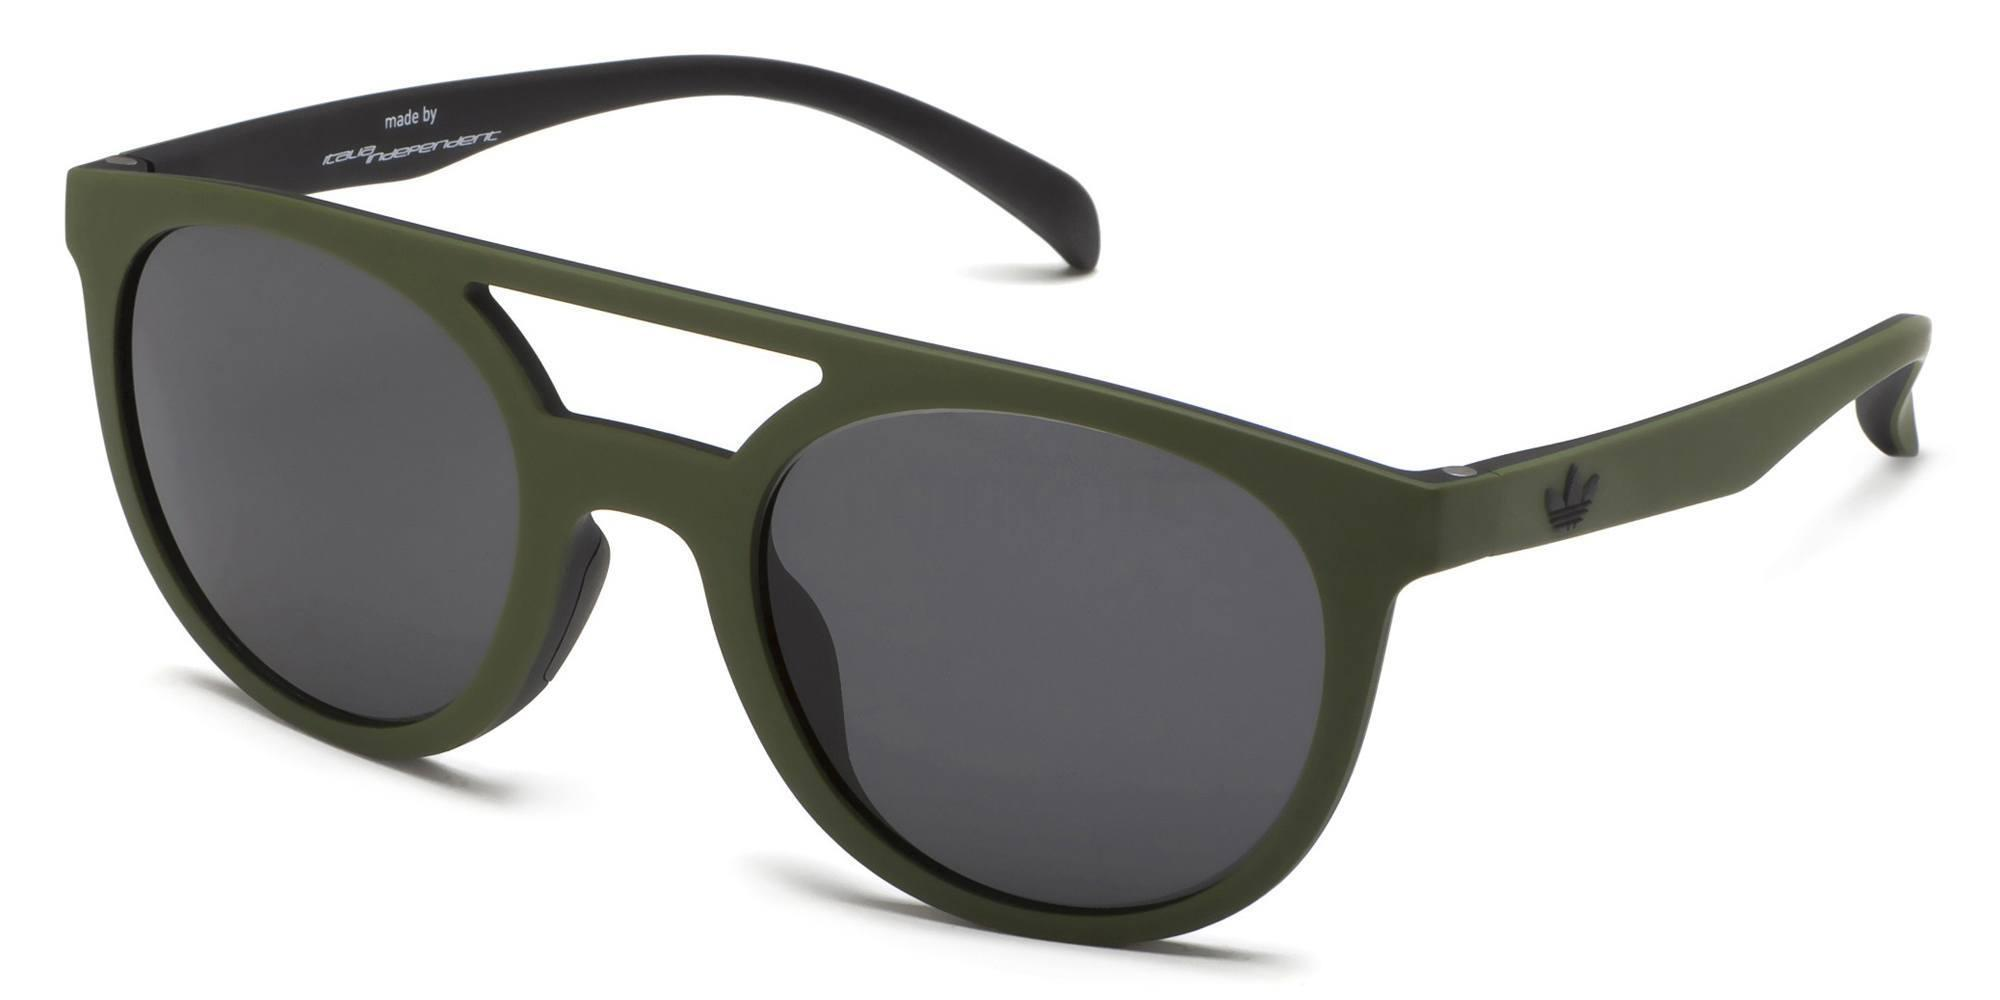 030.009 AOR003 Sunglasses, Adidas Originals